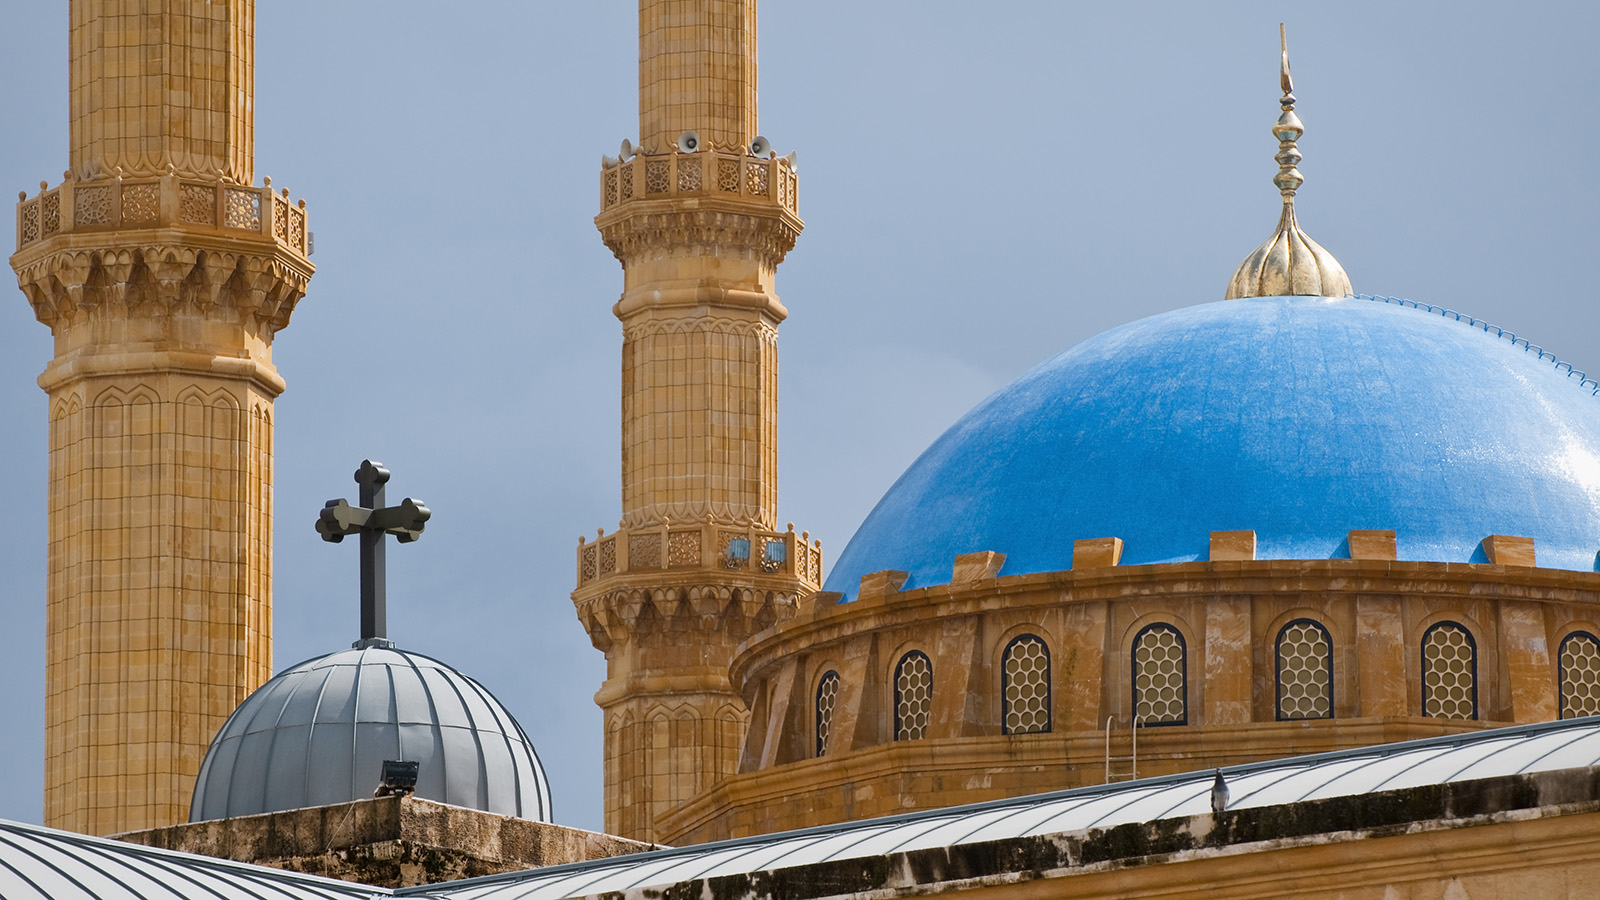 Church dome with cross in front of a mosque with a blue roof in Beirut, Lebanon